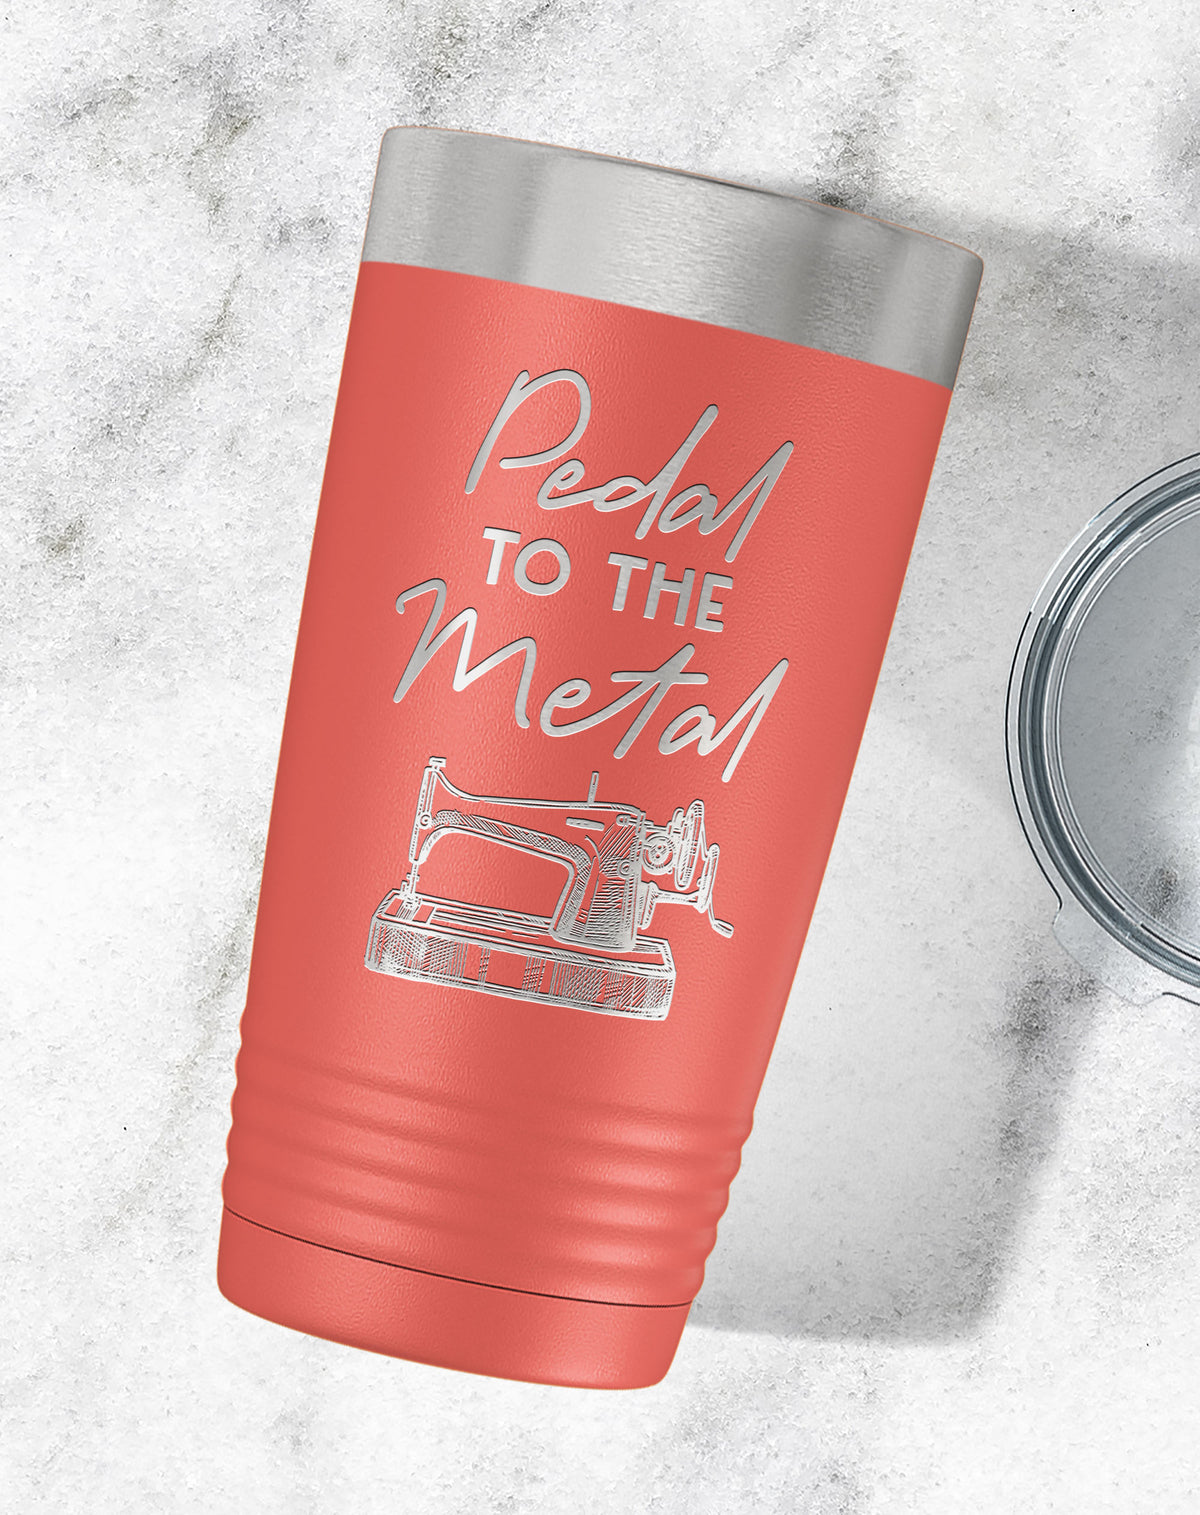 Pedal To The Metal Sewing Engraved Tumbler-Tumblers + Water Bottles-Maddie & Co.